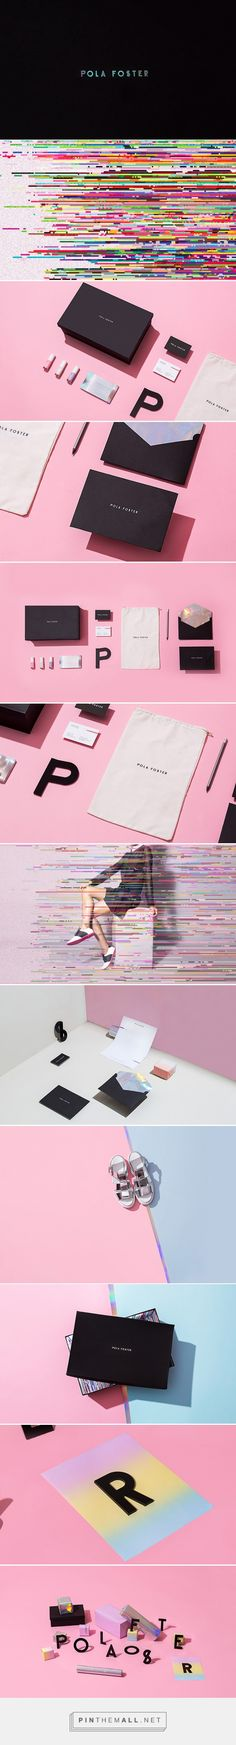 POLA FOSTER packaging branding on Behance by Futura curated by Packaging Diva PD. This is Pola Foster, a project of a Mexican (and very young) entrepreneur who creates handmade shoes.